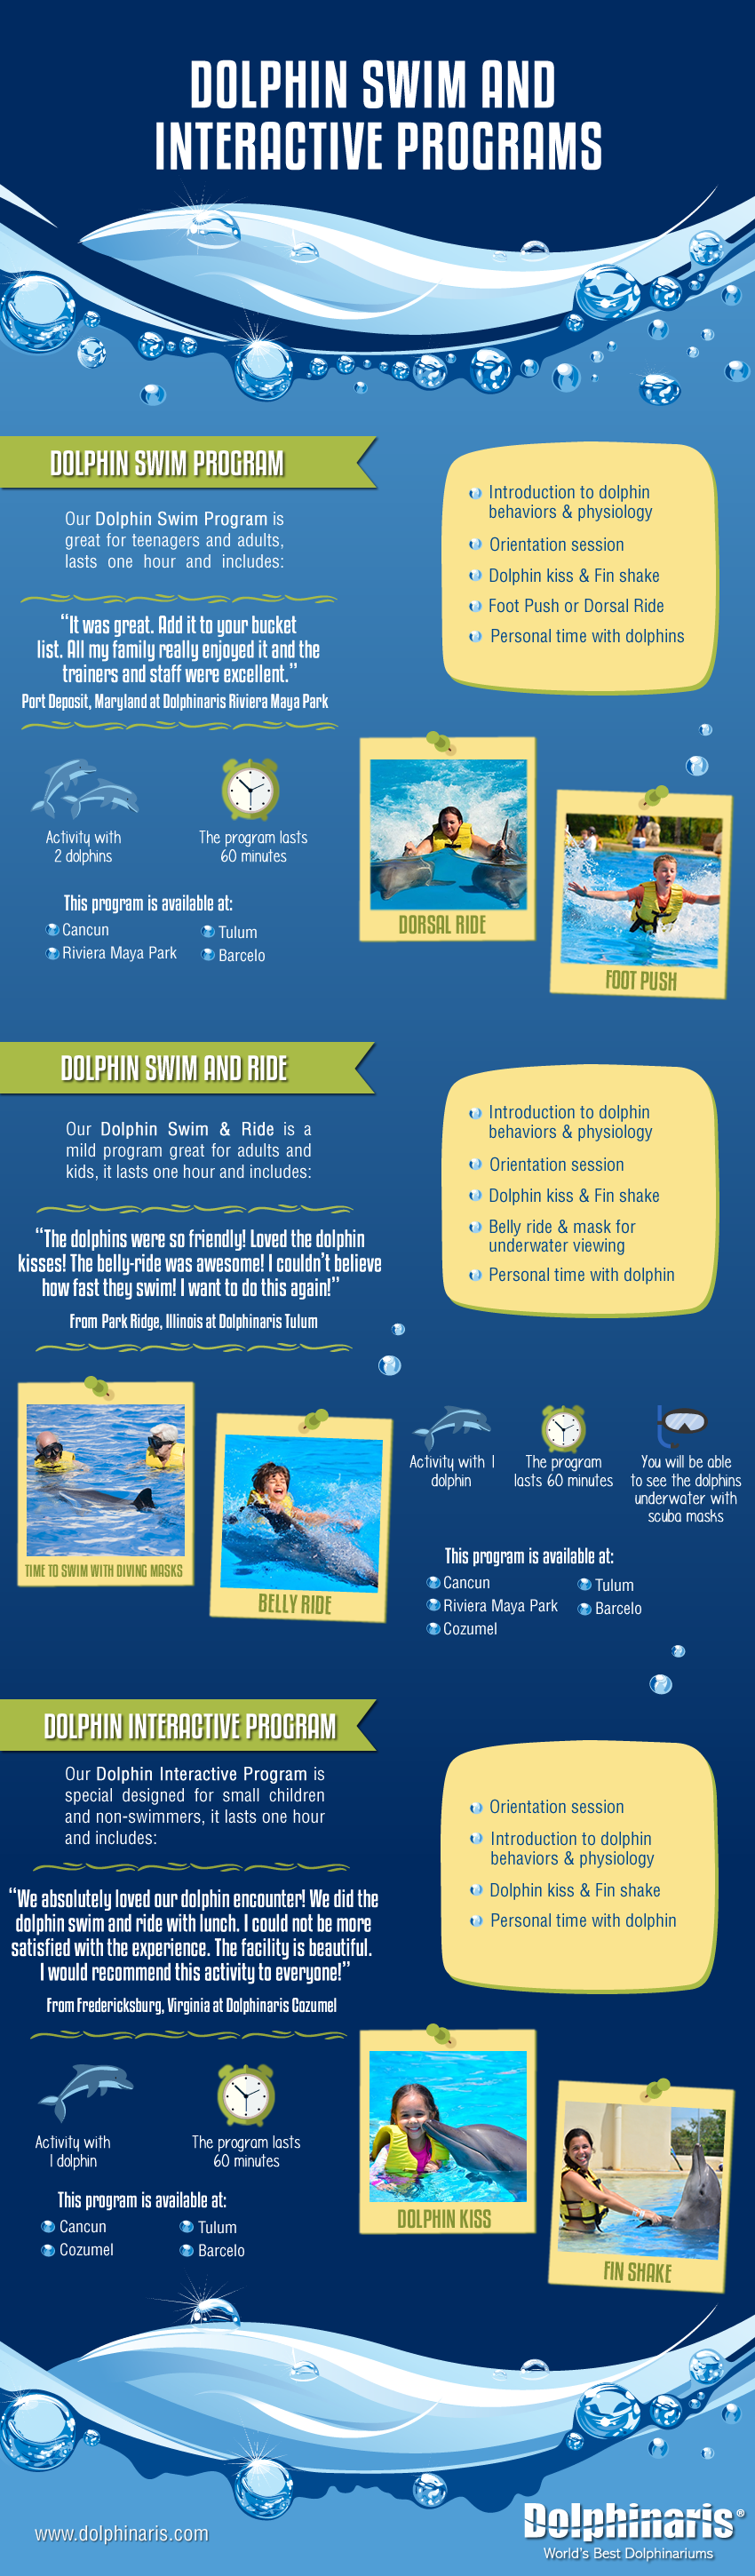 Dolphin swim programs